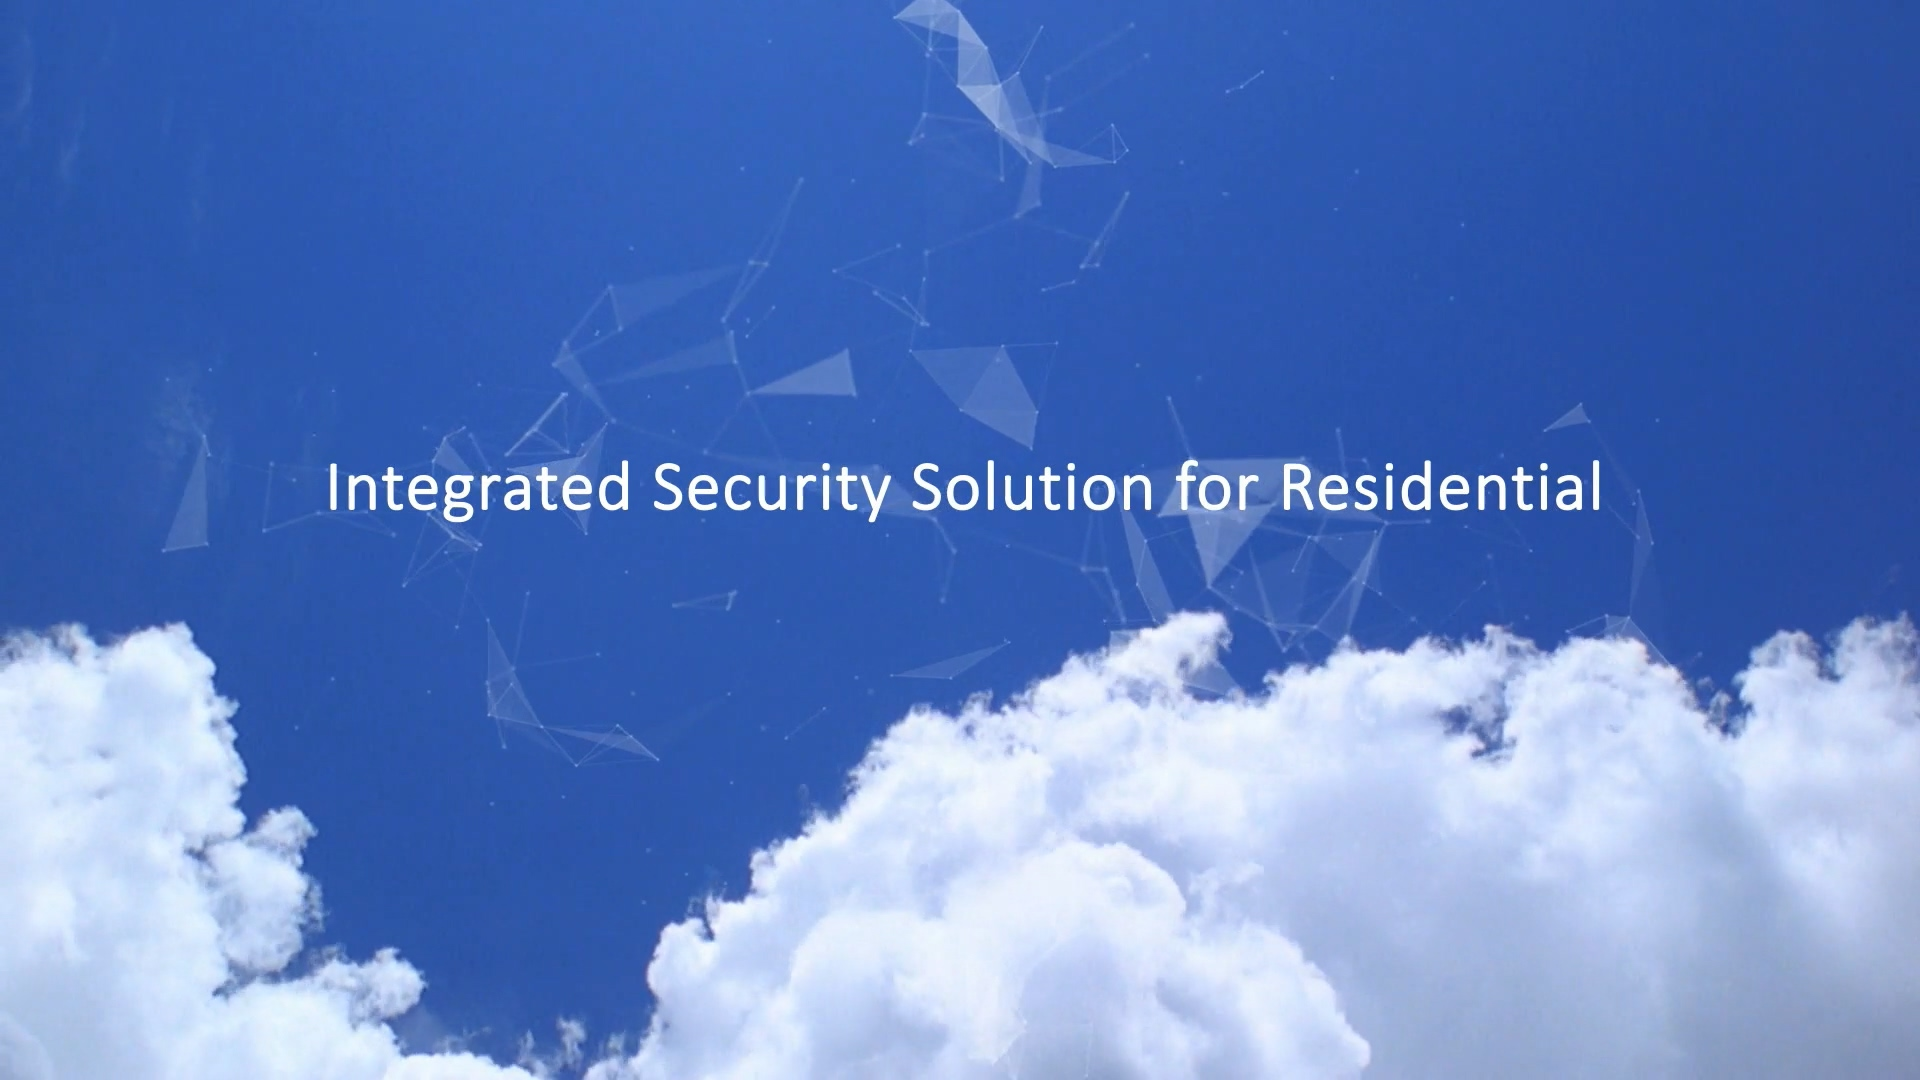 Dahua Integrated Security Solution for Residential